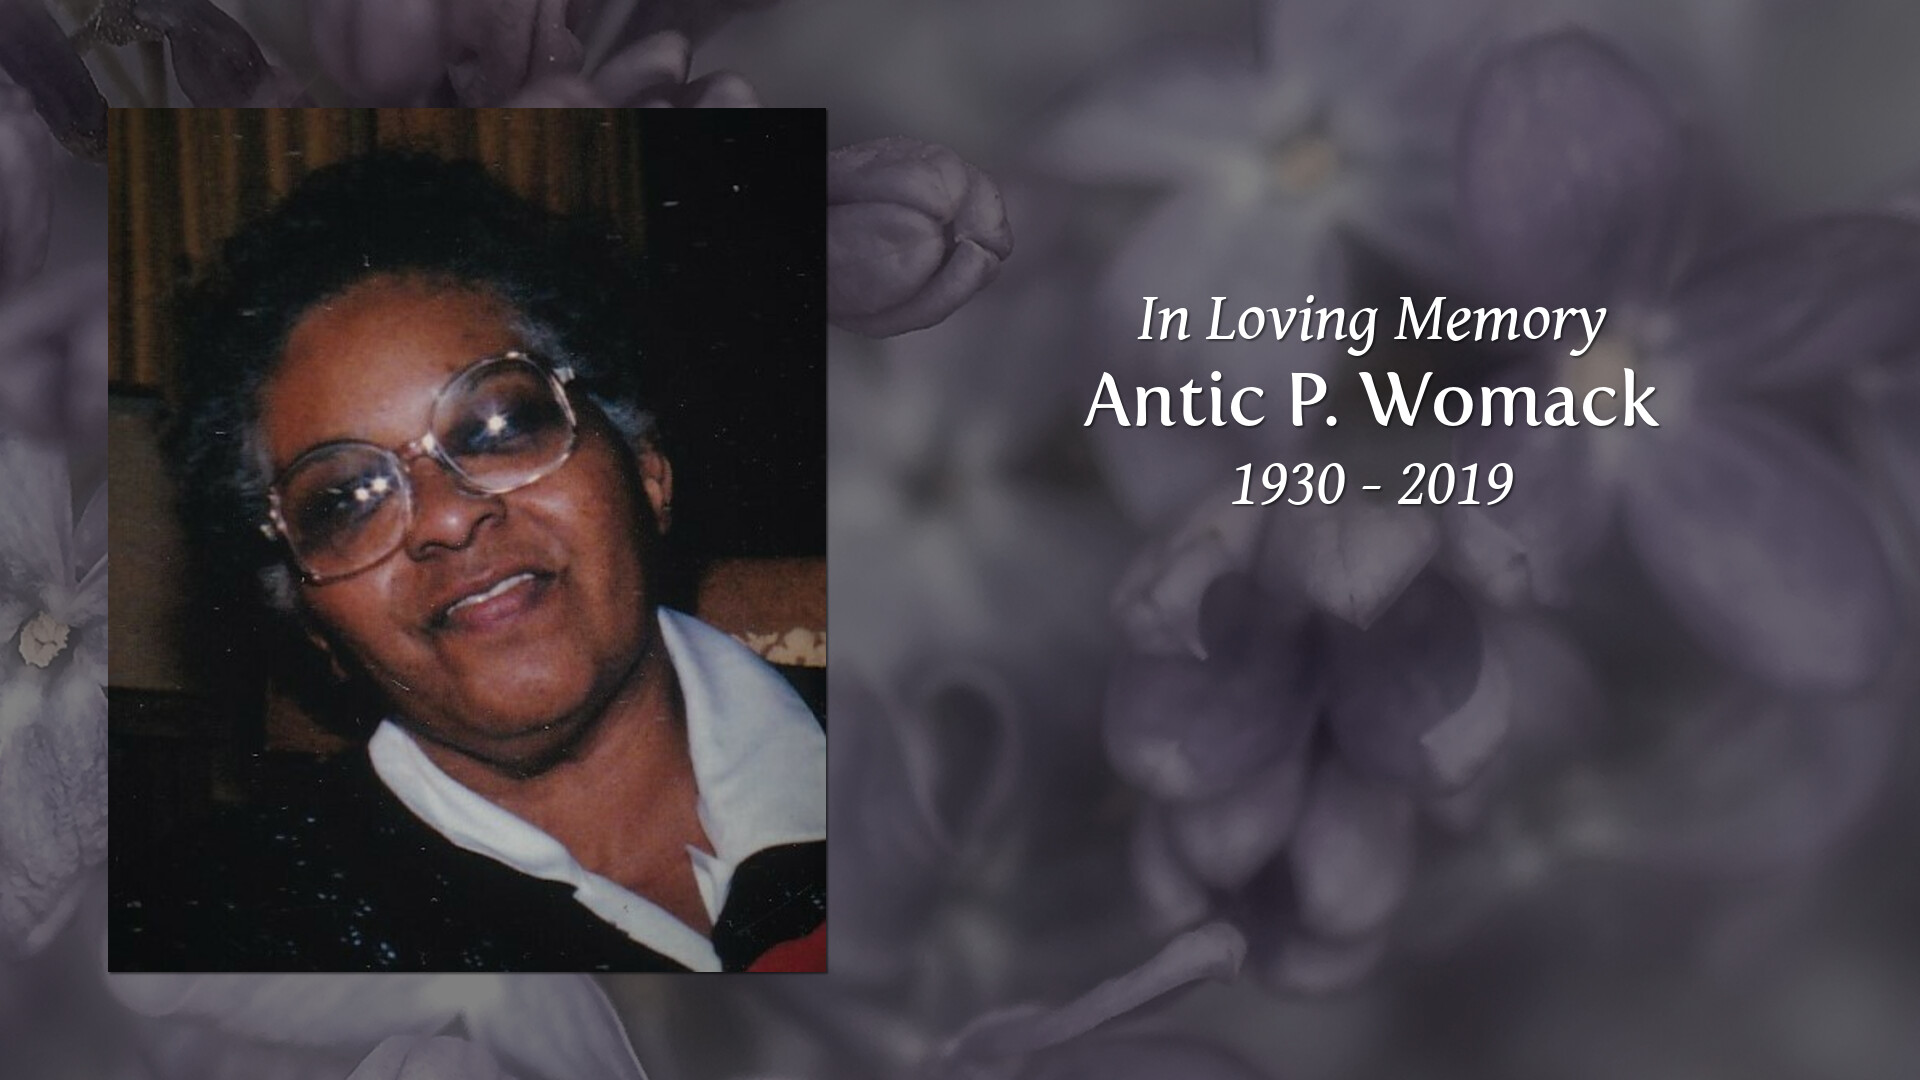 New Comer Family Obituaries - Antic P  Womack 1930 - 2019 - New